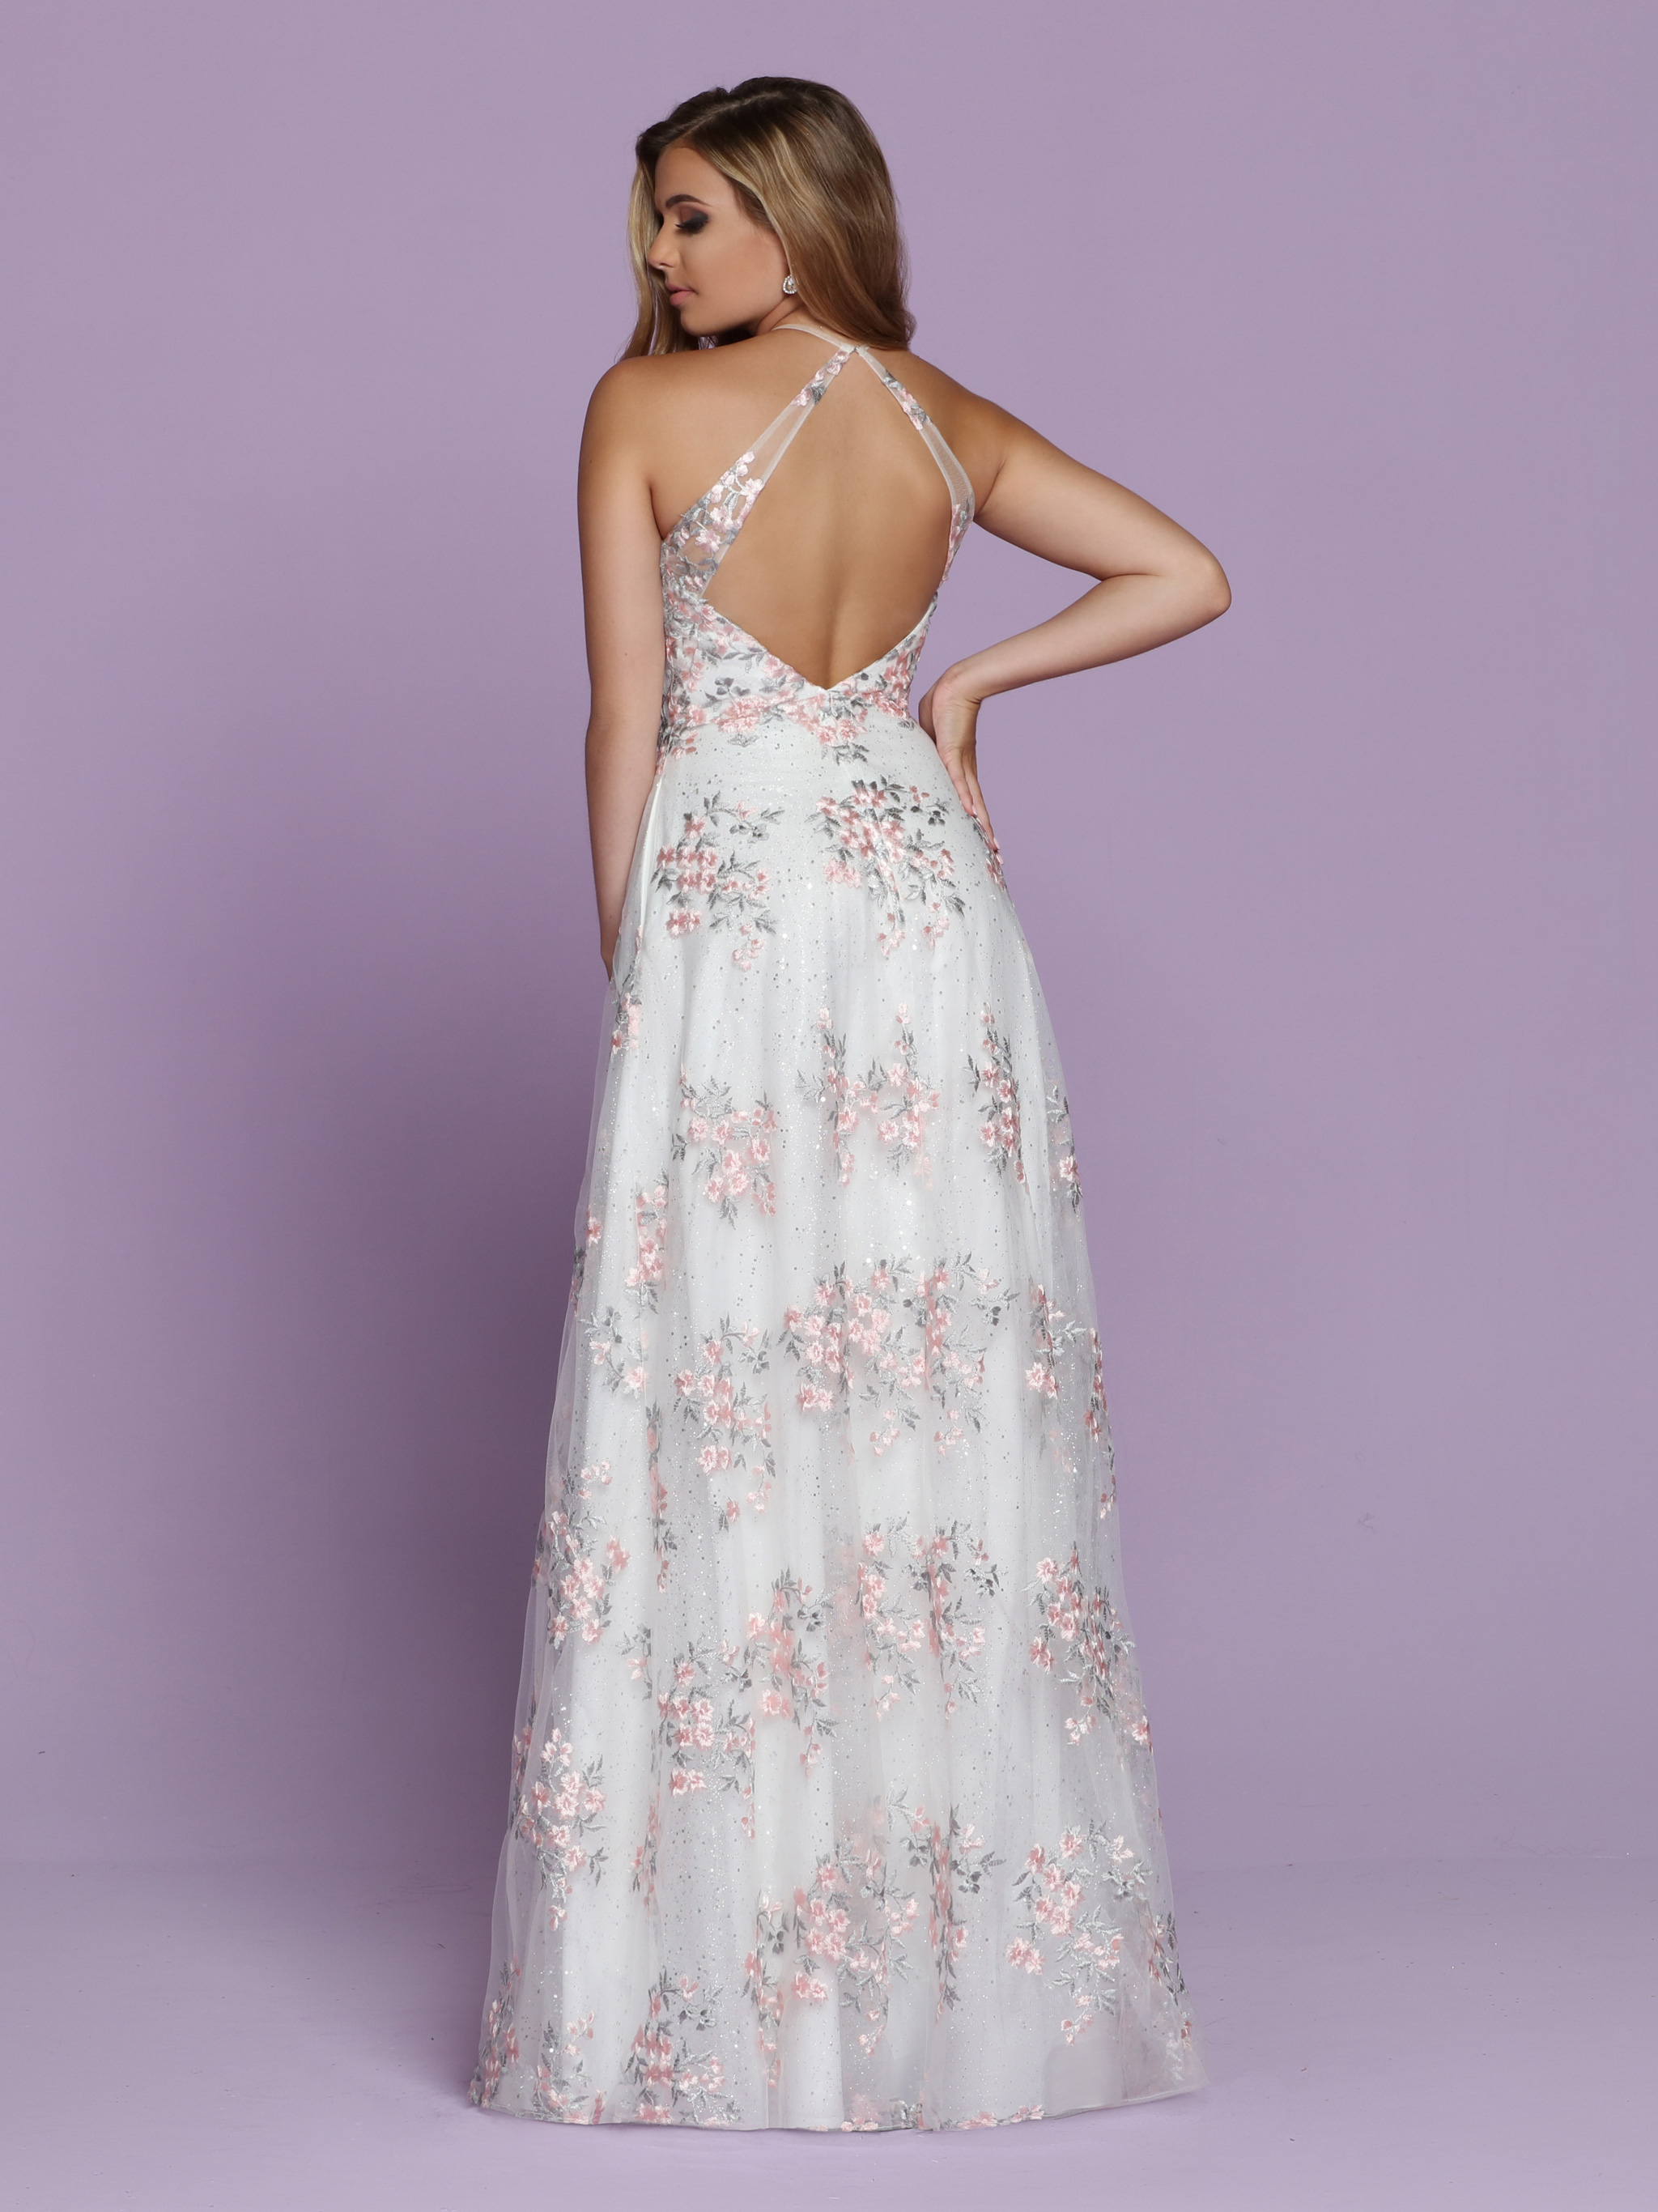 Image showing back view of style #72081